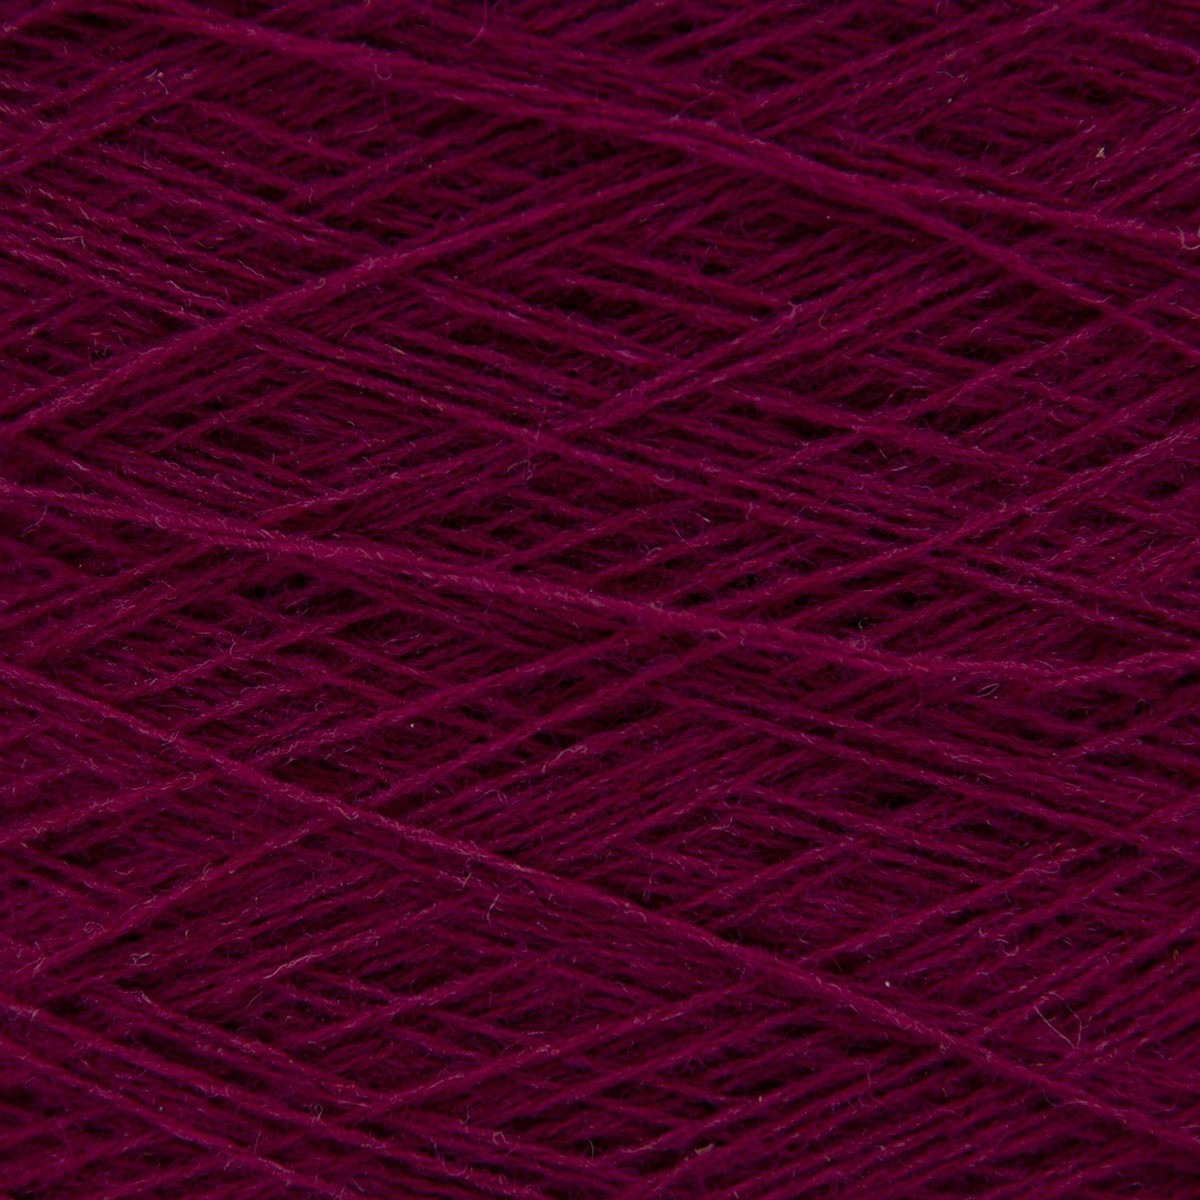 Knoll Yarns Supersoft - 141